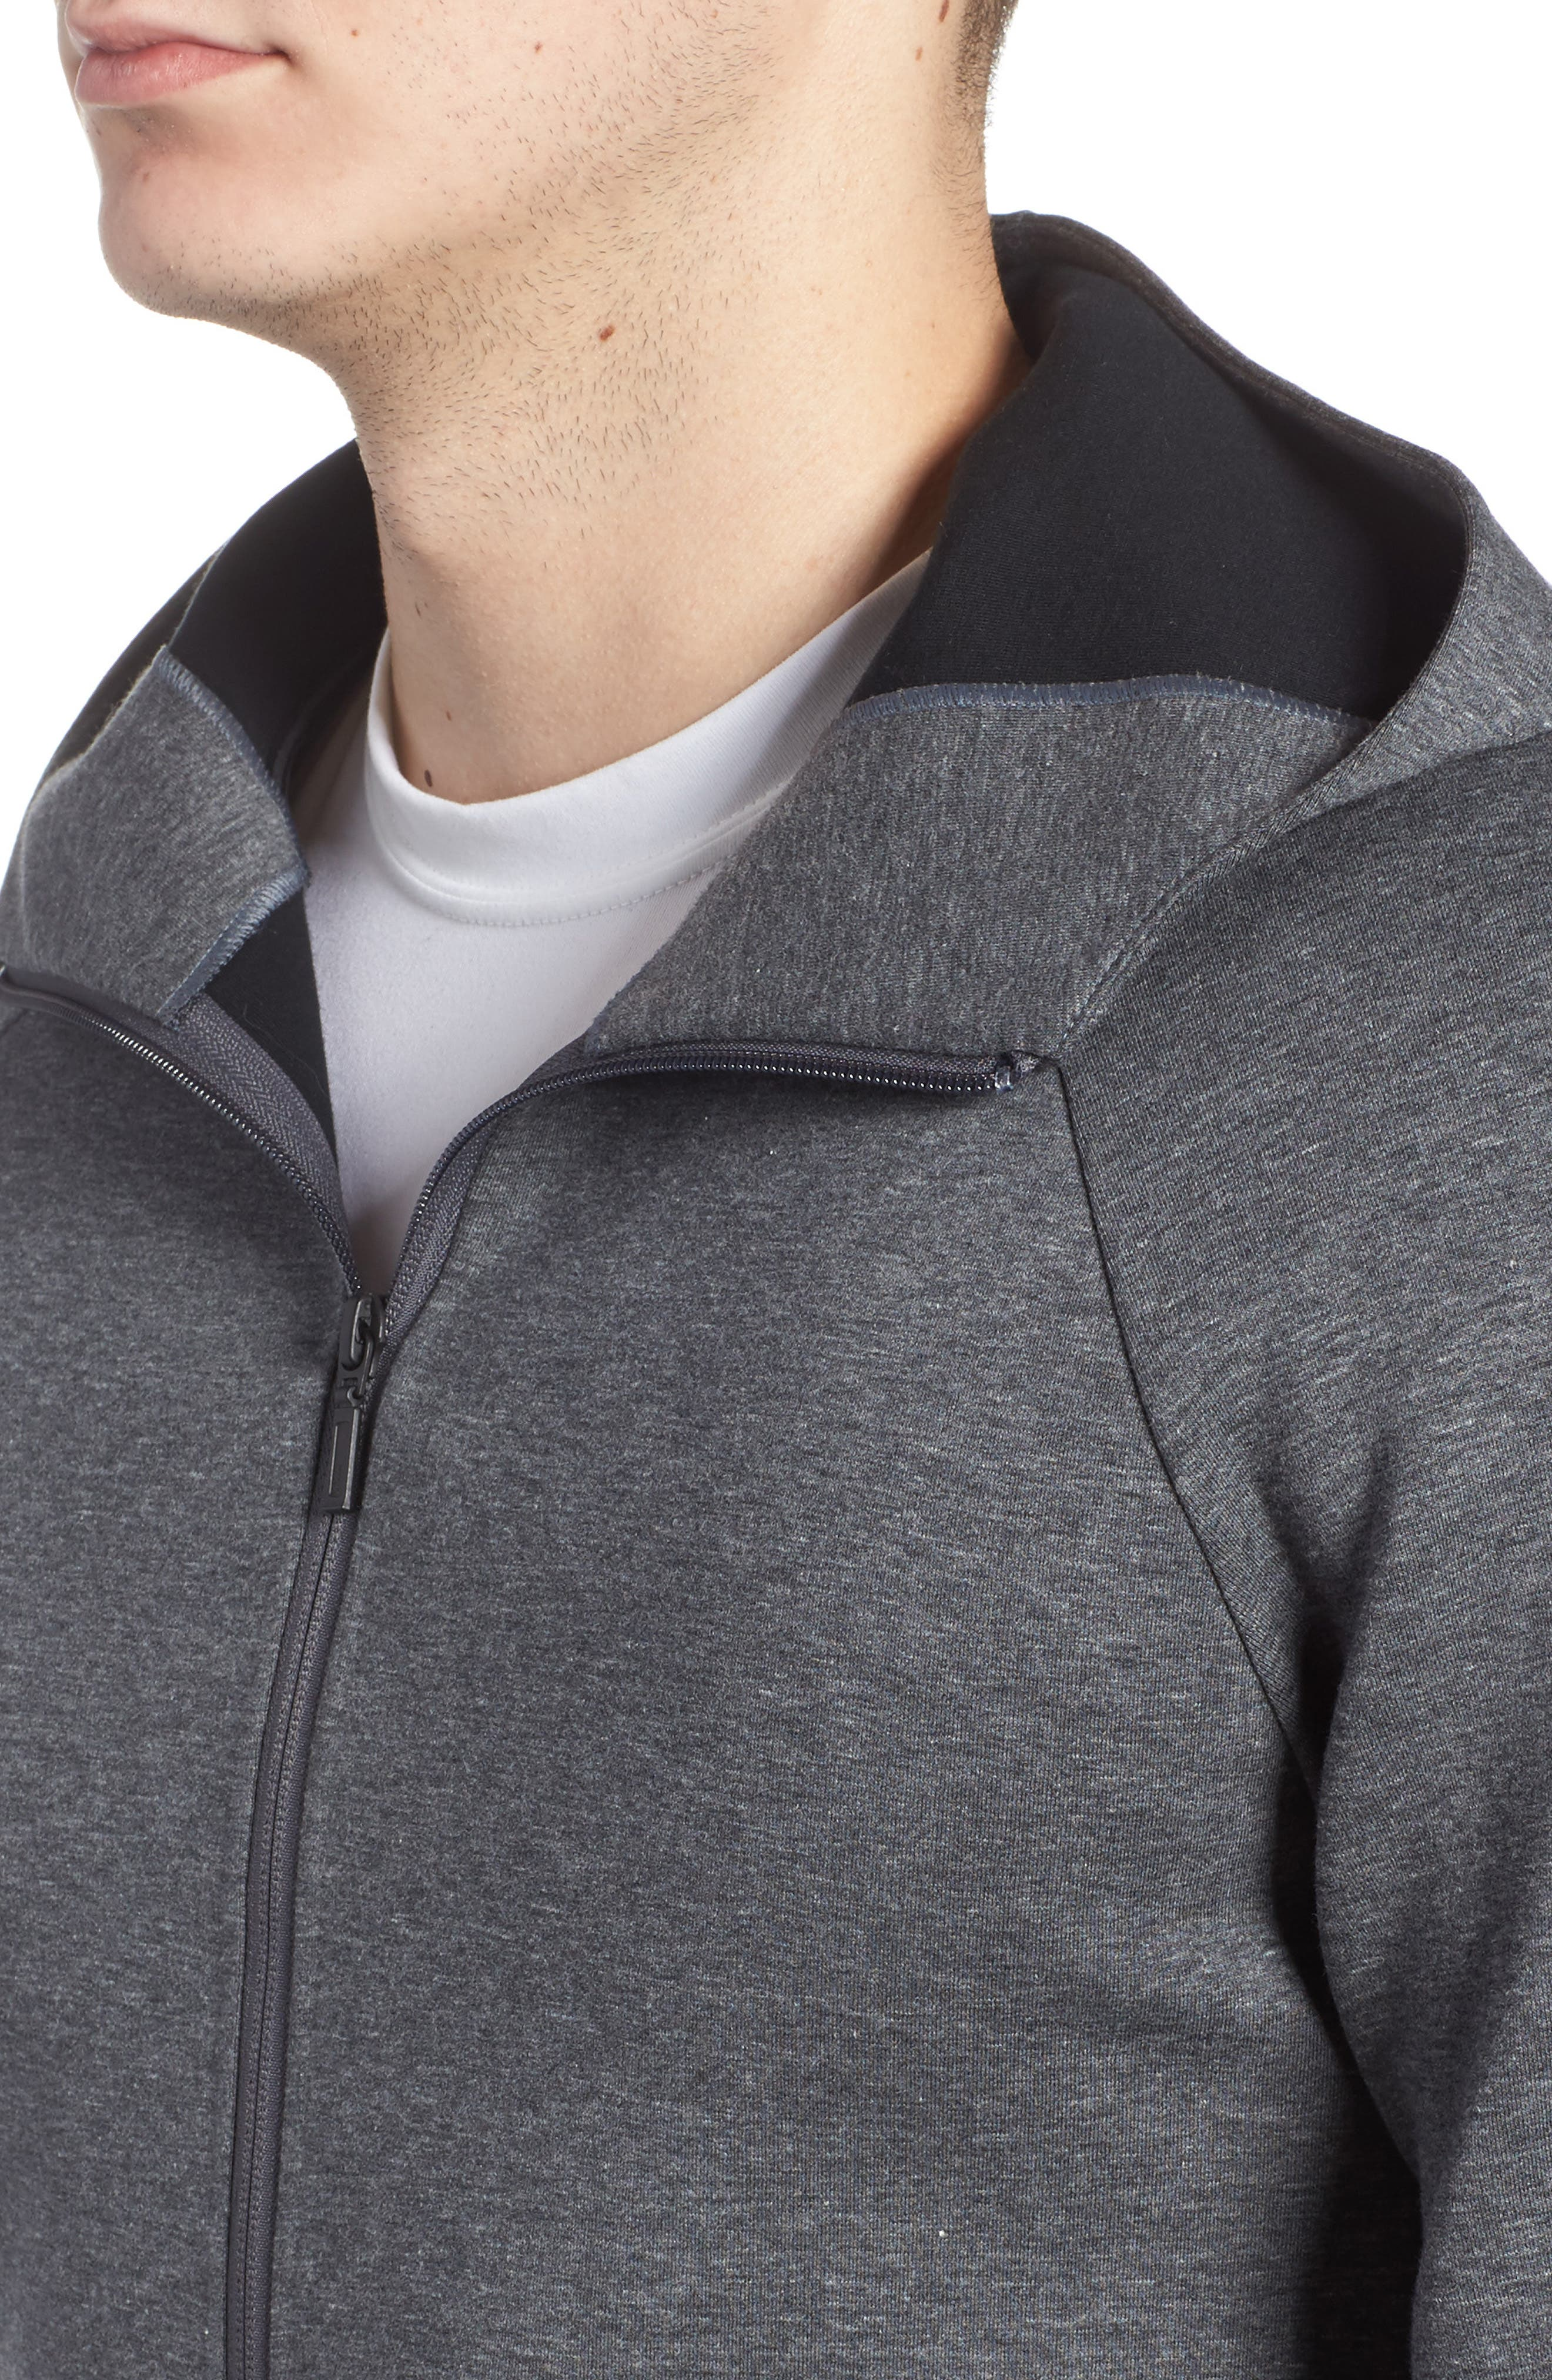 Ethos Zip Hoodie,                             Alternate thumbnail 4, color,                             021